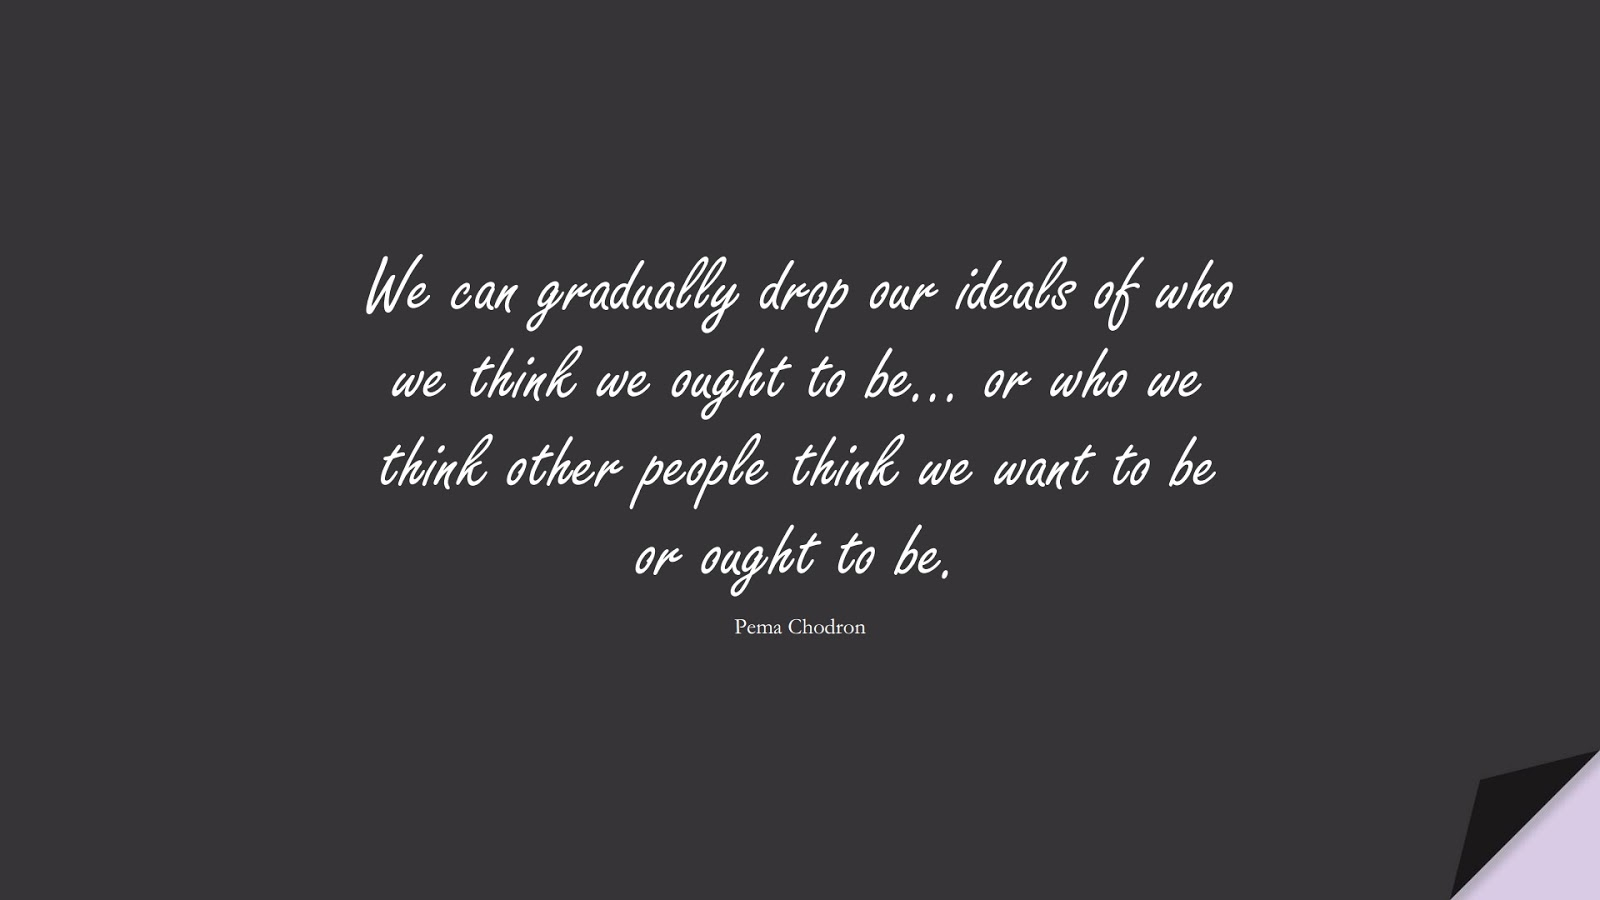 We can gradually drop our ideals of who we think we ought to be… or who we think other people think we want to be or ought to be. (Pema Chodron);  #SelfEsteemQuotes